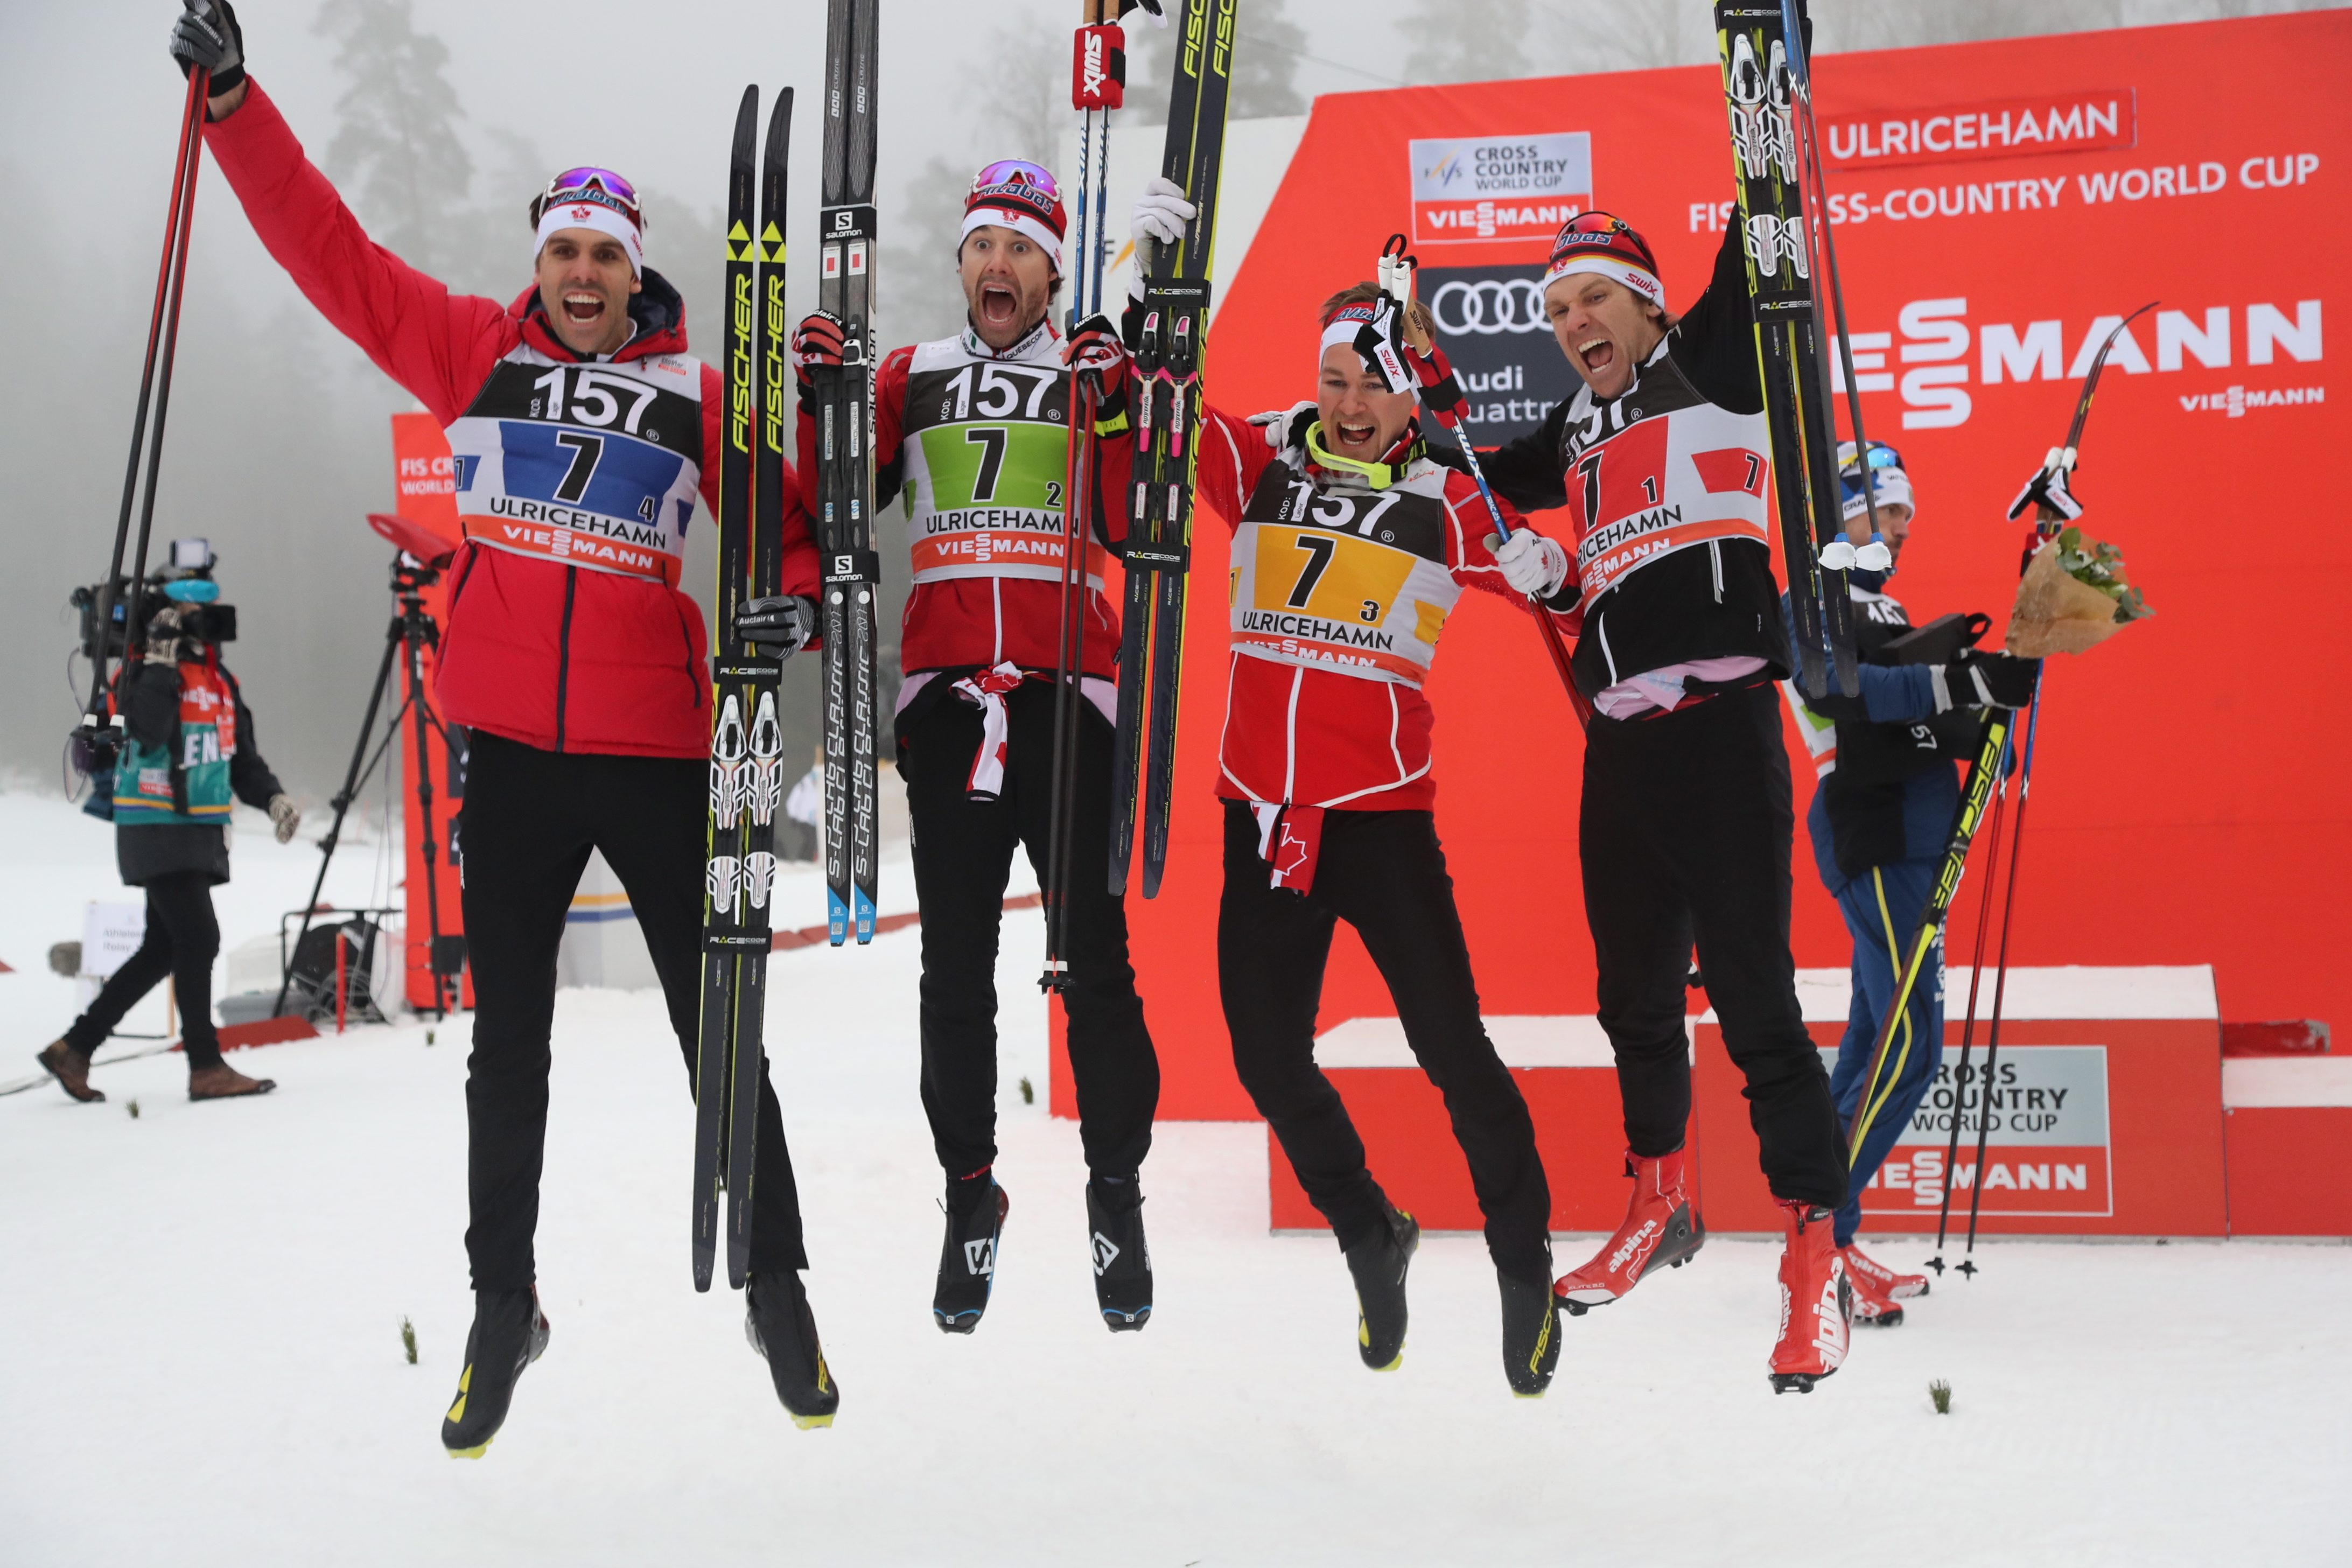 Team of Canada, from left, Len Valjas, Alex Harvey, Knute Johnsgaard and Devon Kershaw celebrate their third place in men's relay 4x7.5 km competition at the FIS Cross Country skiing World Cup event in Ulricehamn, Sweden, Sunday Jan. 22, 2017. (Adam Ihse / TT via AP)